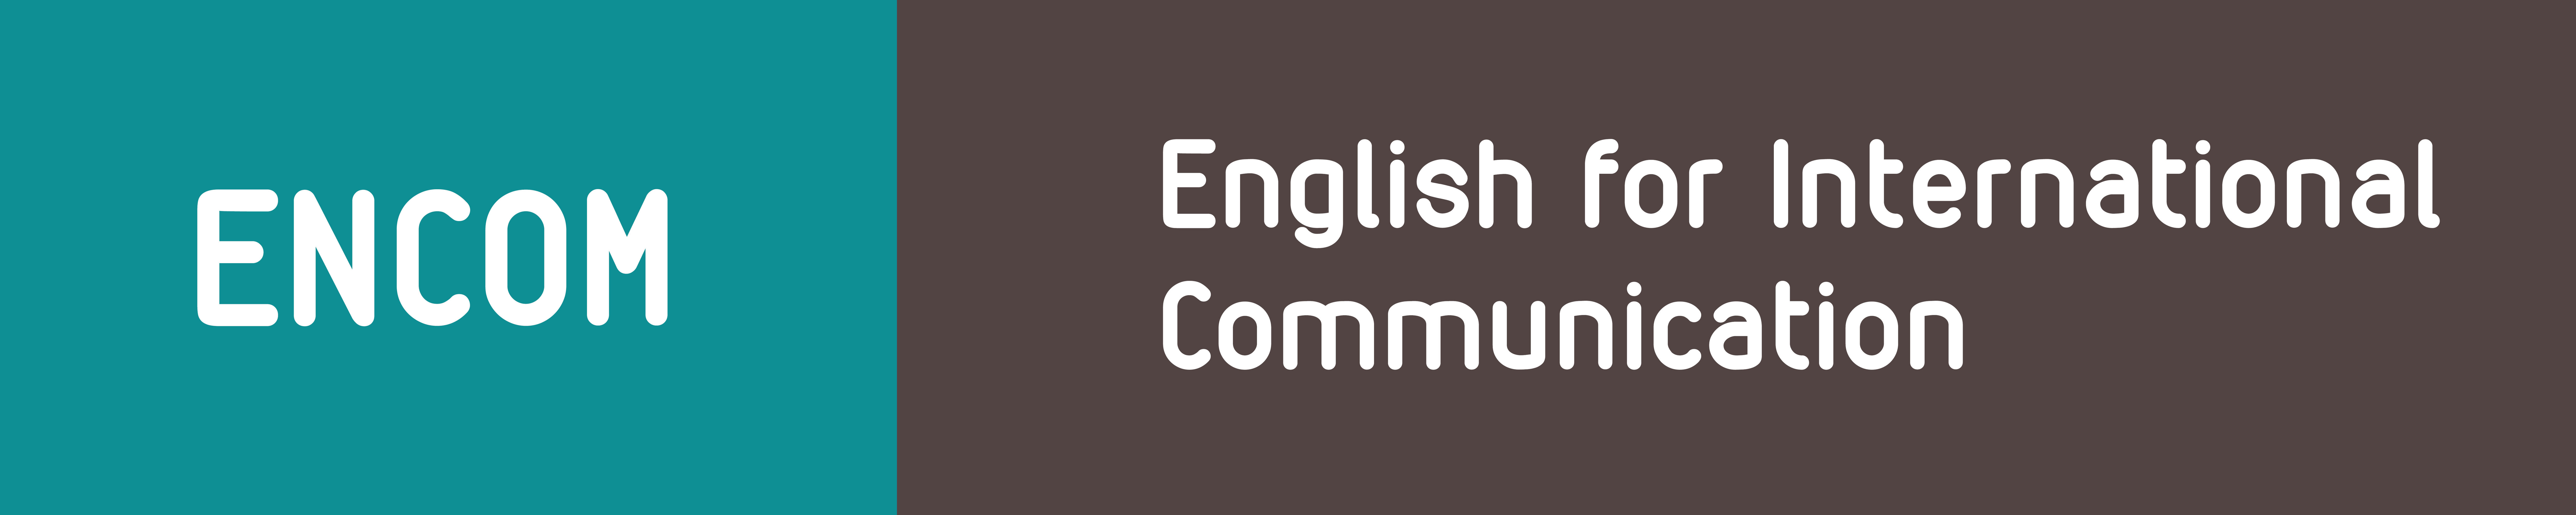 Bachelor of Arts (Hons.) in English For International Communication